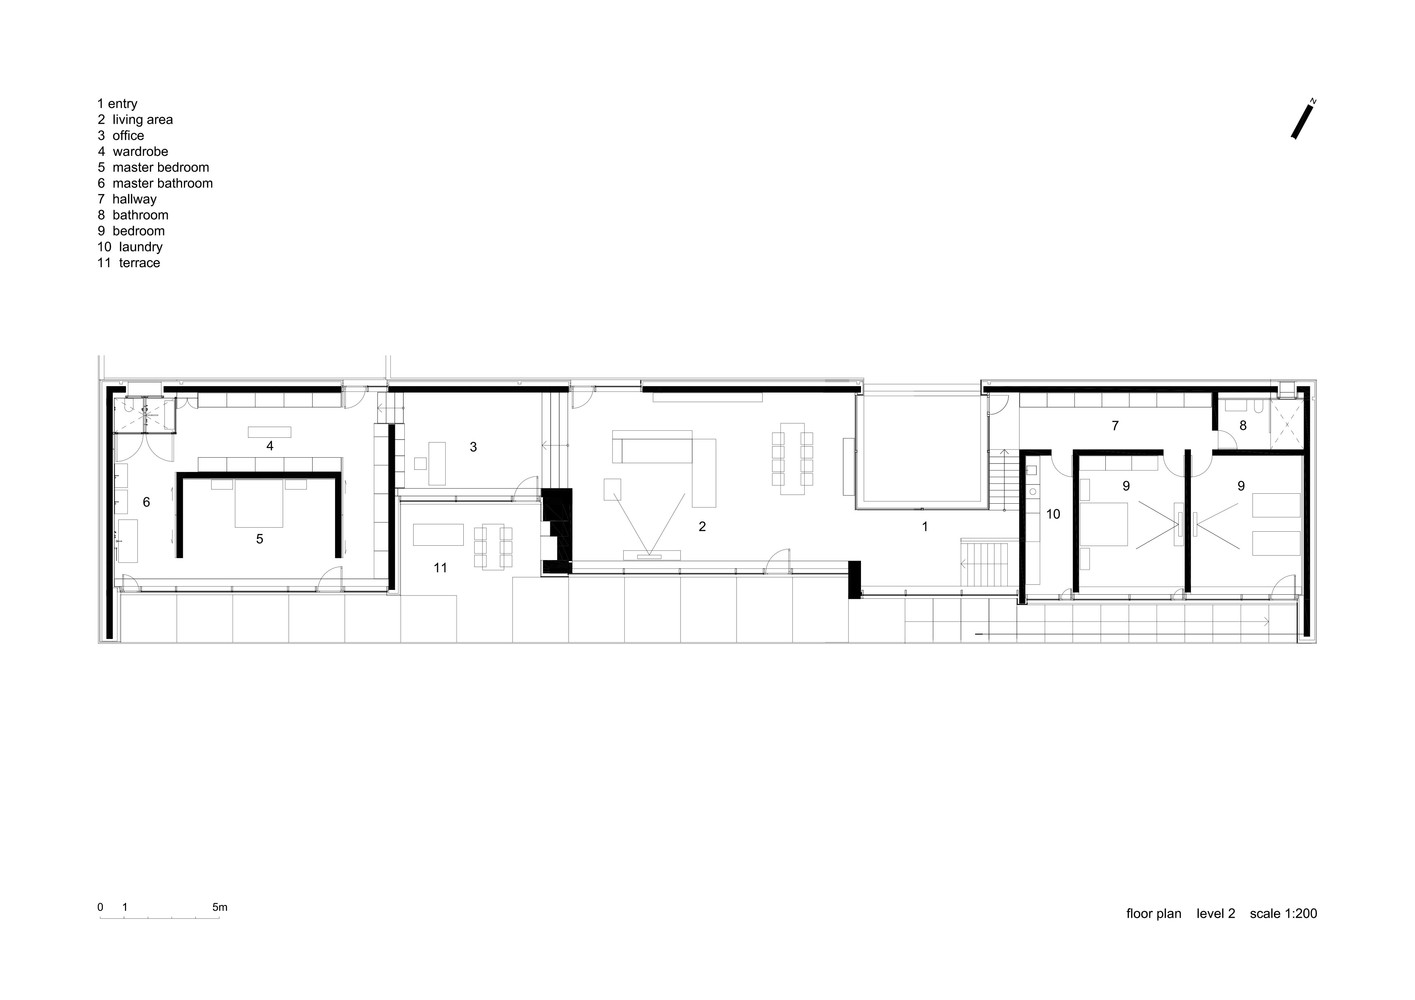 Gallery of Slight Slope Long House / I/O Architects - 19 on long house projects, viking longhouse plans, building plans, long house architecture, kitchen floor plans, long tile, a-frame house, long house elevations, long house inside, shotgun house, creole cottage, sod house, narrow lot floor plans, ranch-style house, long house ideas, long house blueprints, long house drawings, long native american house es, victorian house, california bungalow,